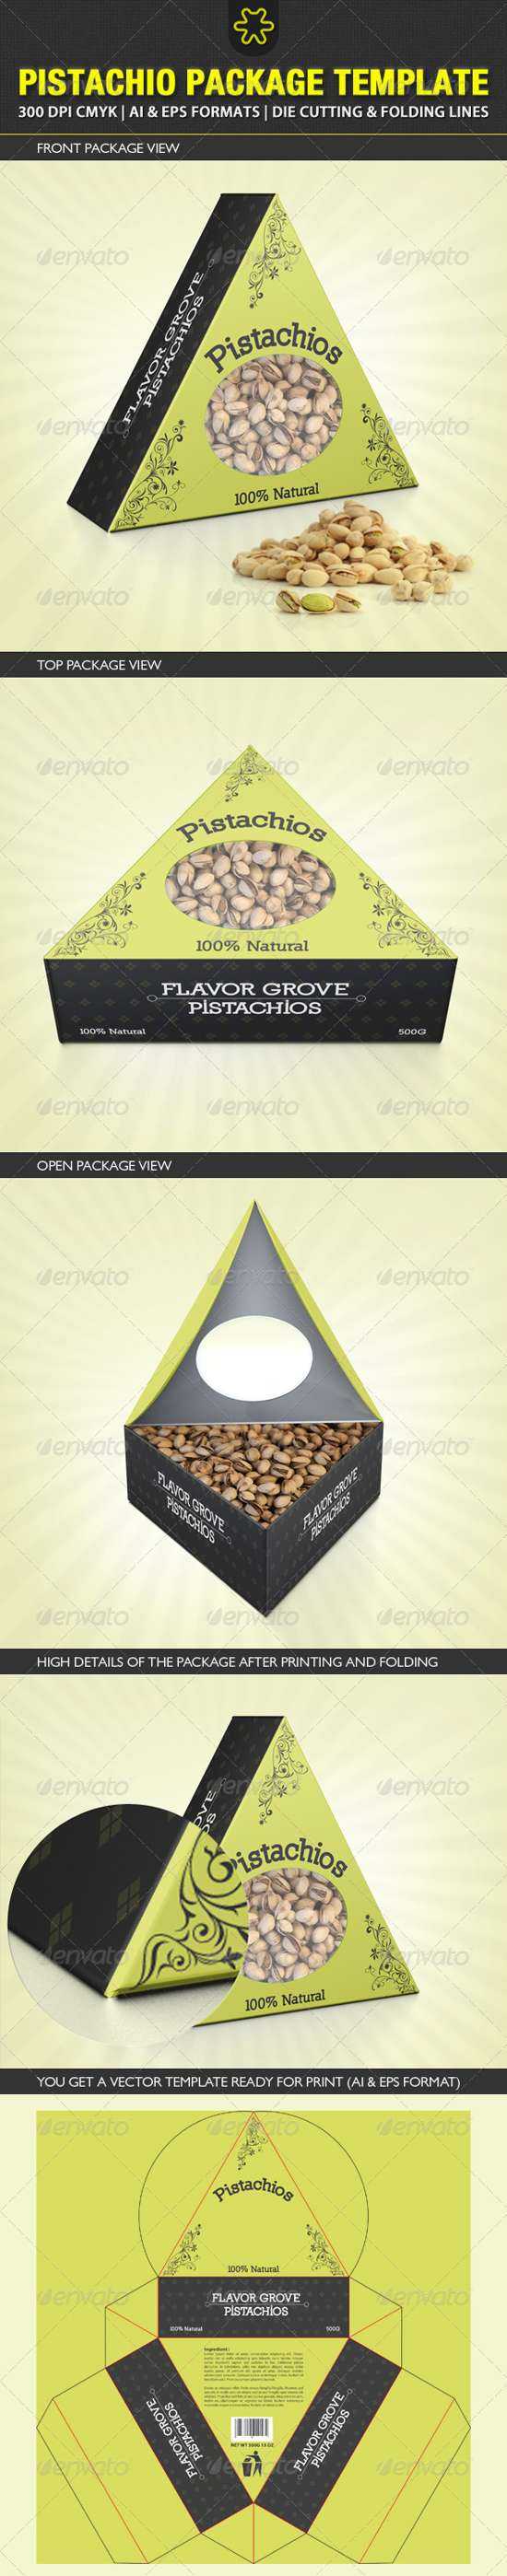 pistachio packaging template